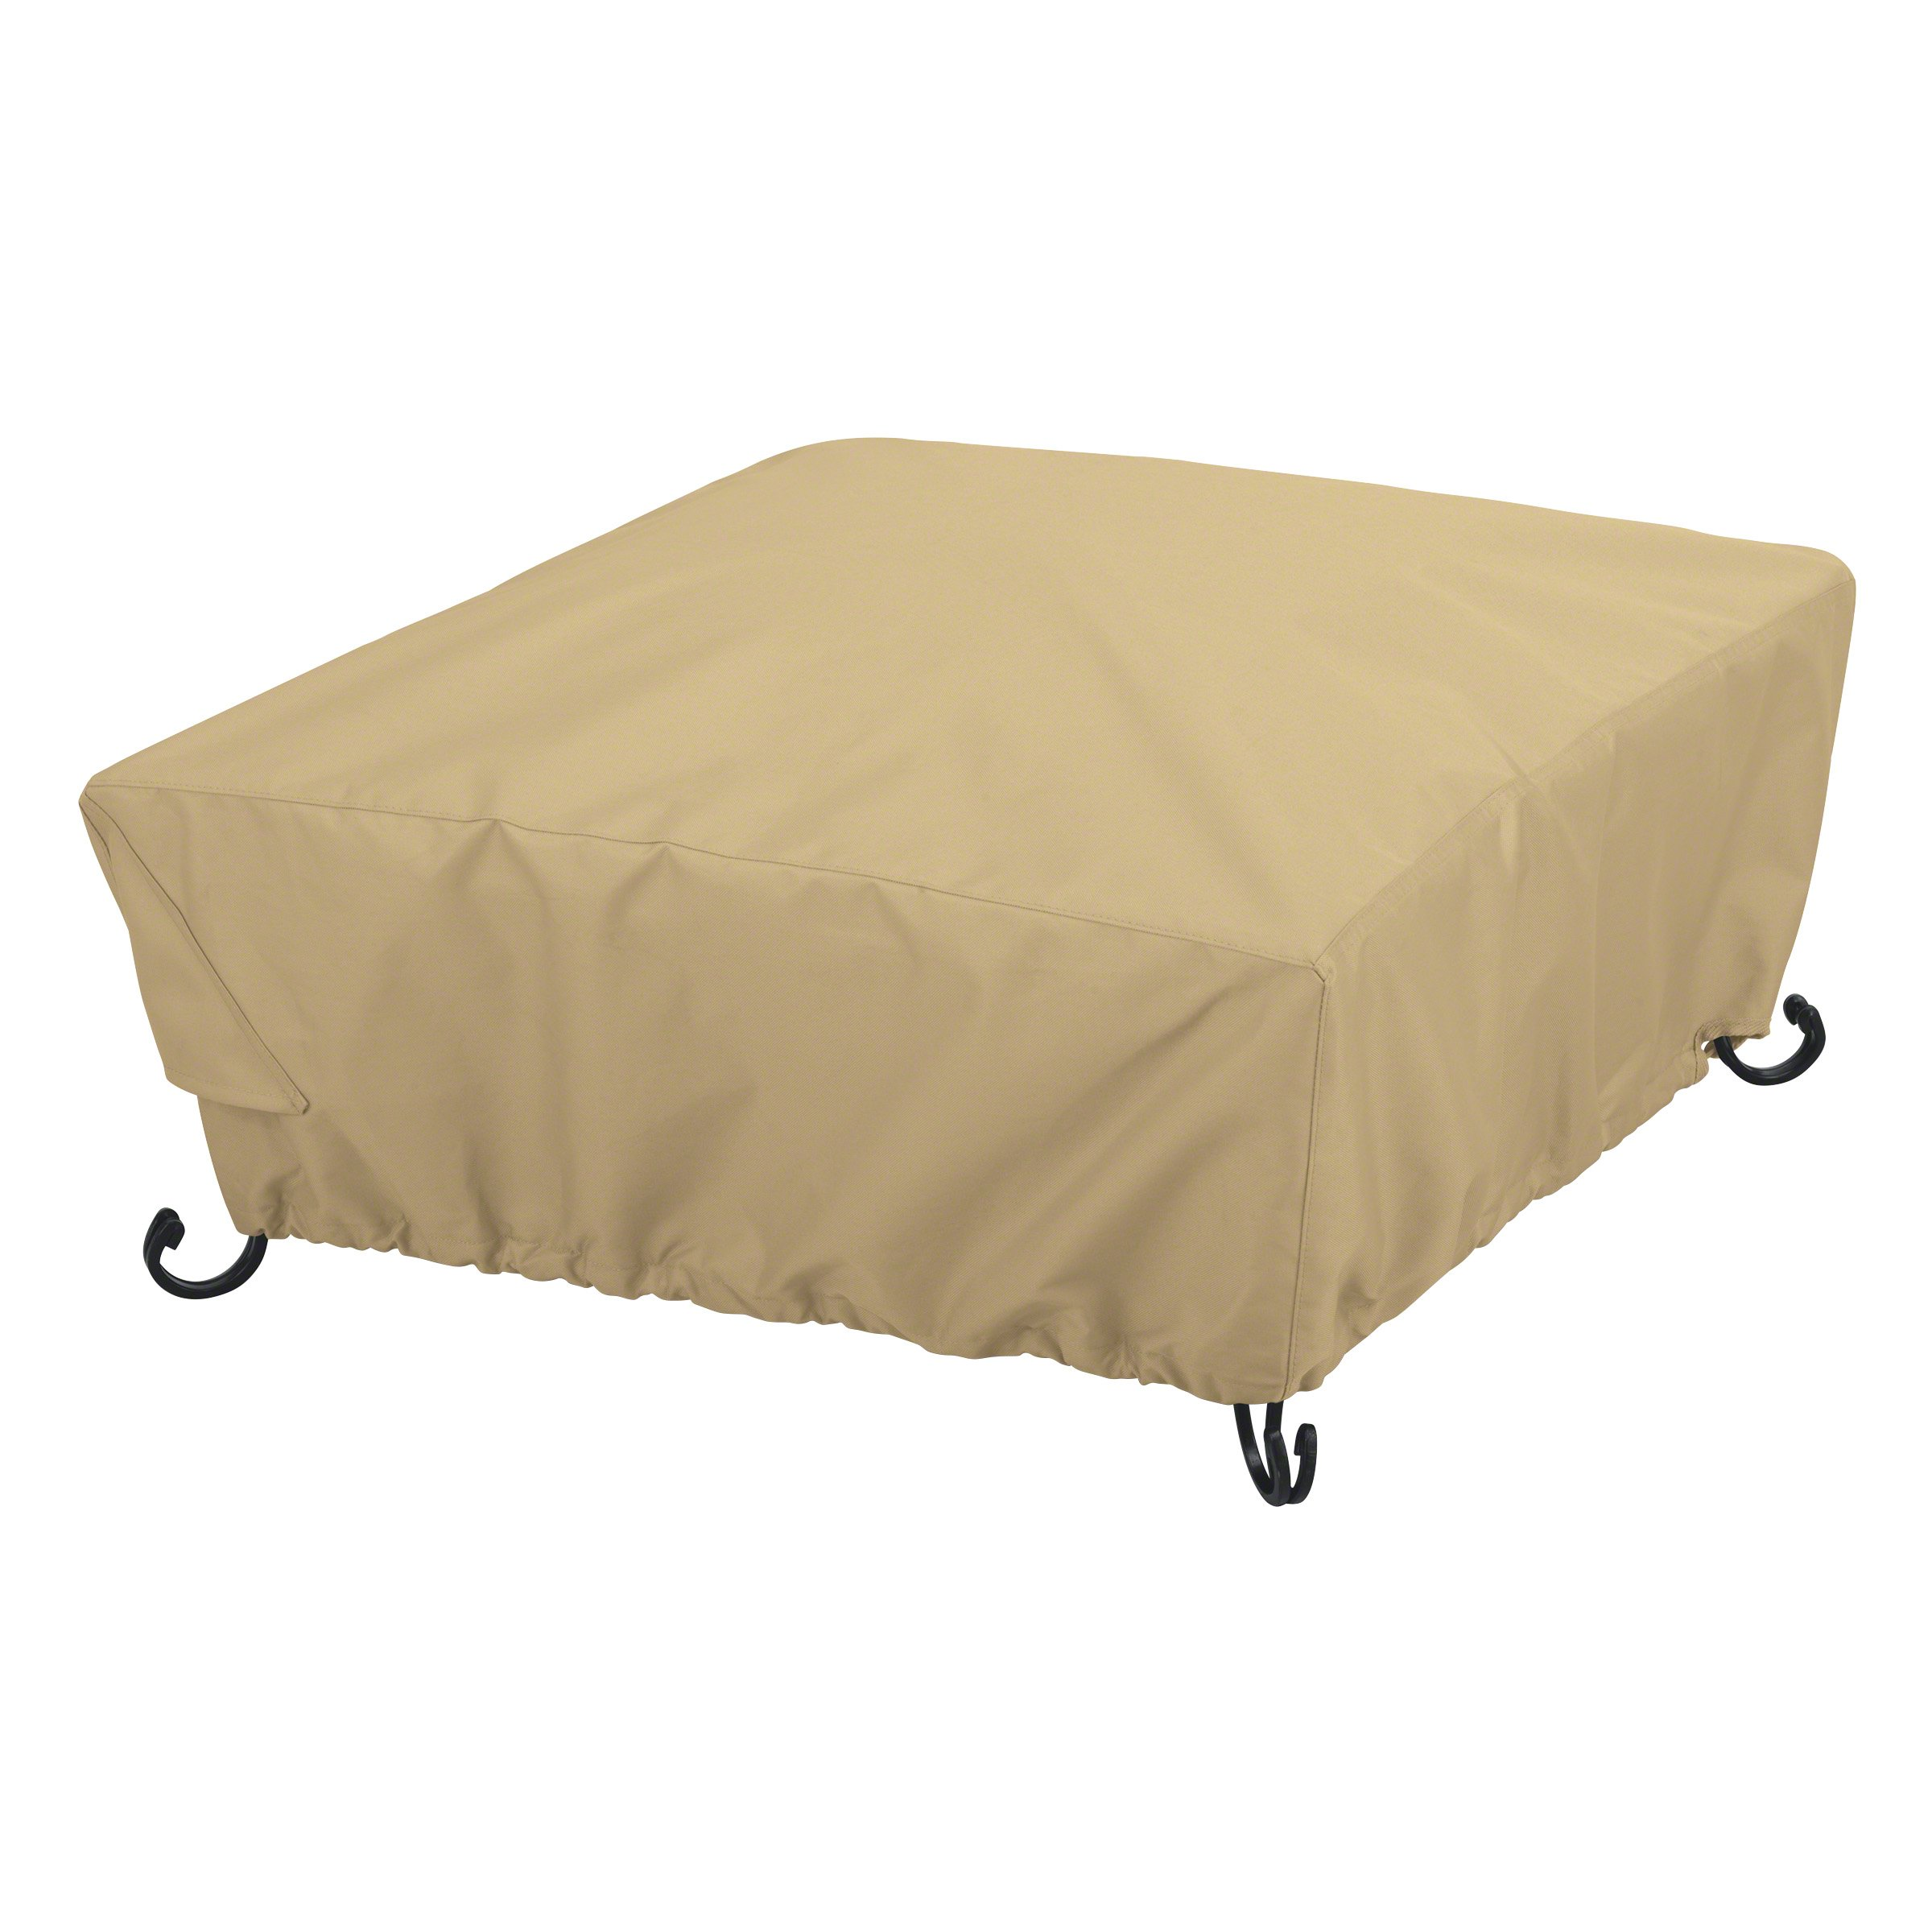 Classic Accessories Terrazzo Full Coverage Square Fire Pit Cover - All Weather Protection Outdoor Cover, Small, 30-Inch (59922-EC)